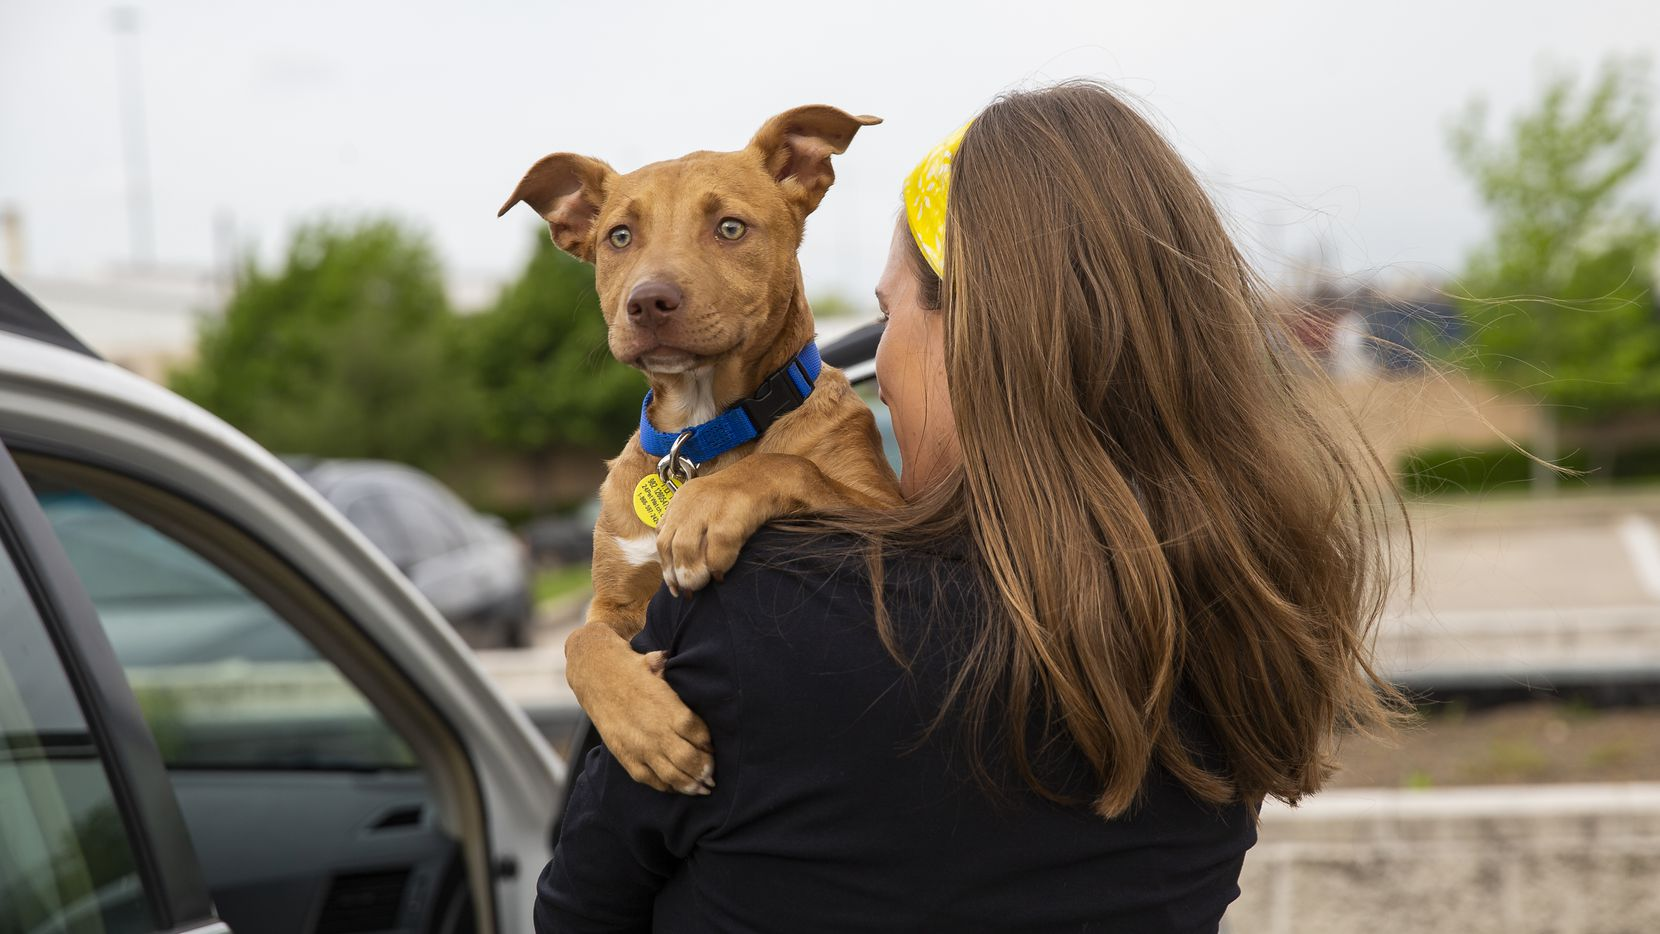 Irving Animal Services will waive adoption fees for all animals under 1 year Saturday as part of a Thanksgiving-themed event. Lexi Sorbara  carries her new foster dog Biggs into the car after picking him up curbside at Dallas Animal Services.